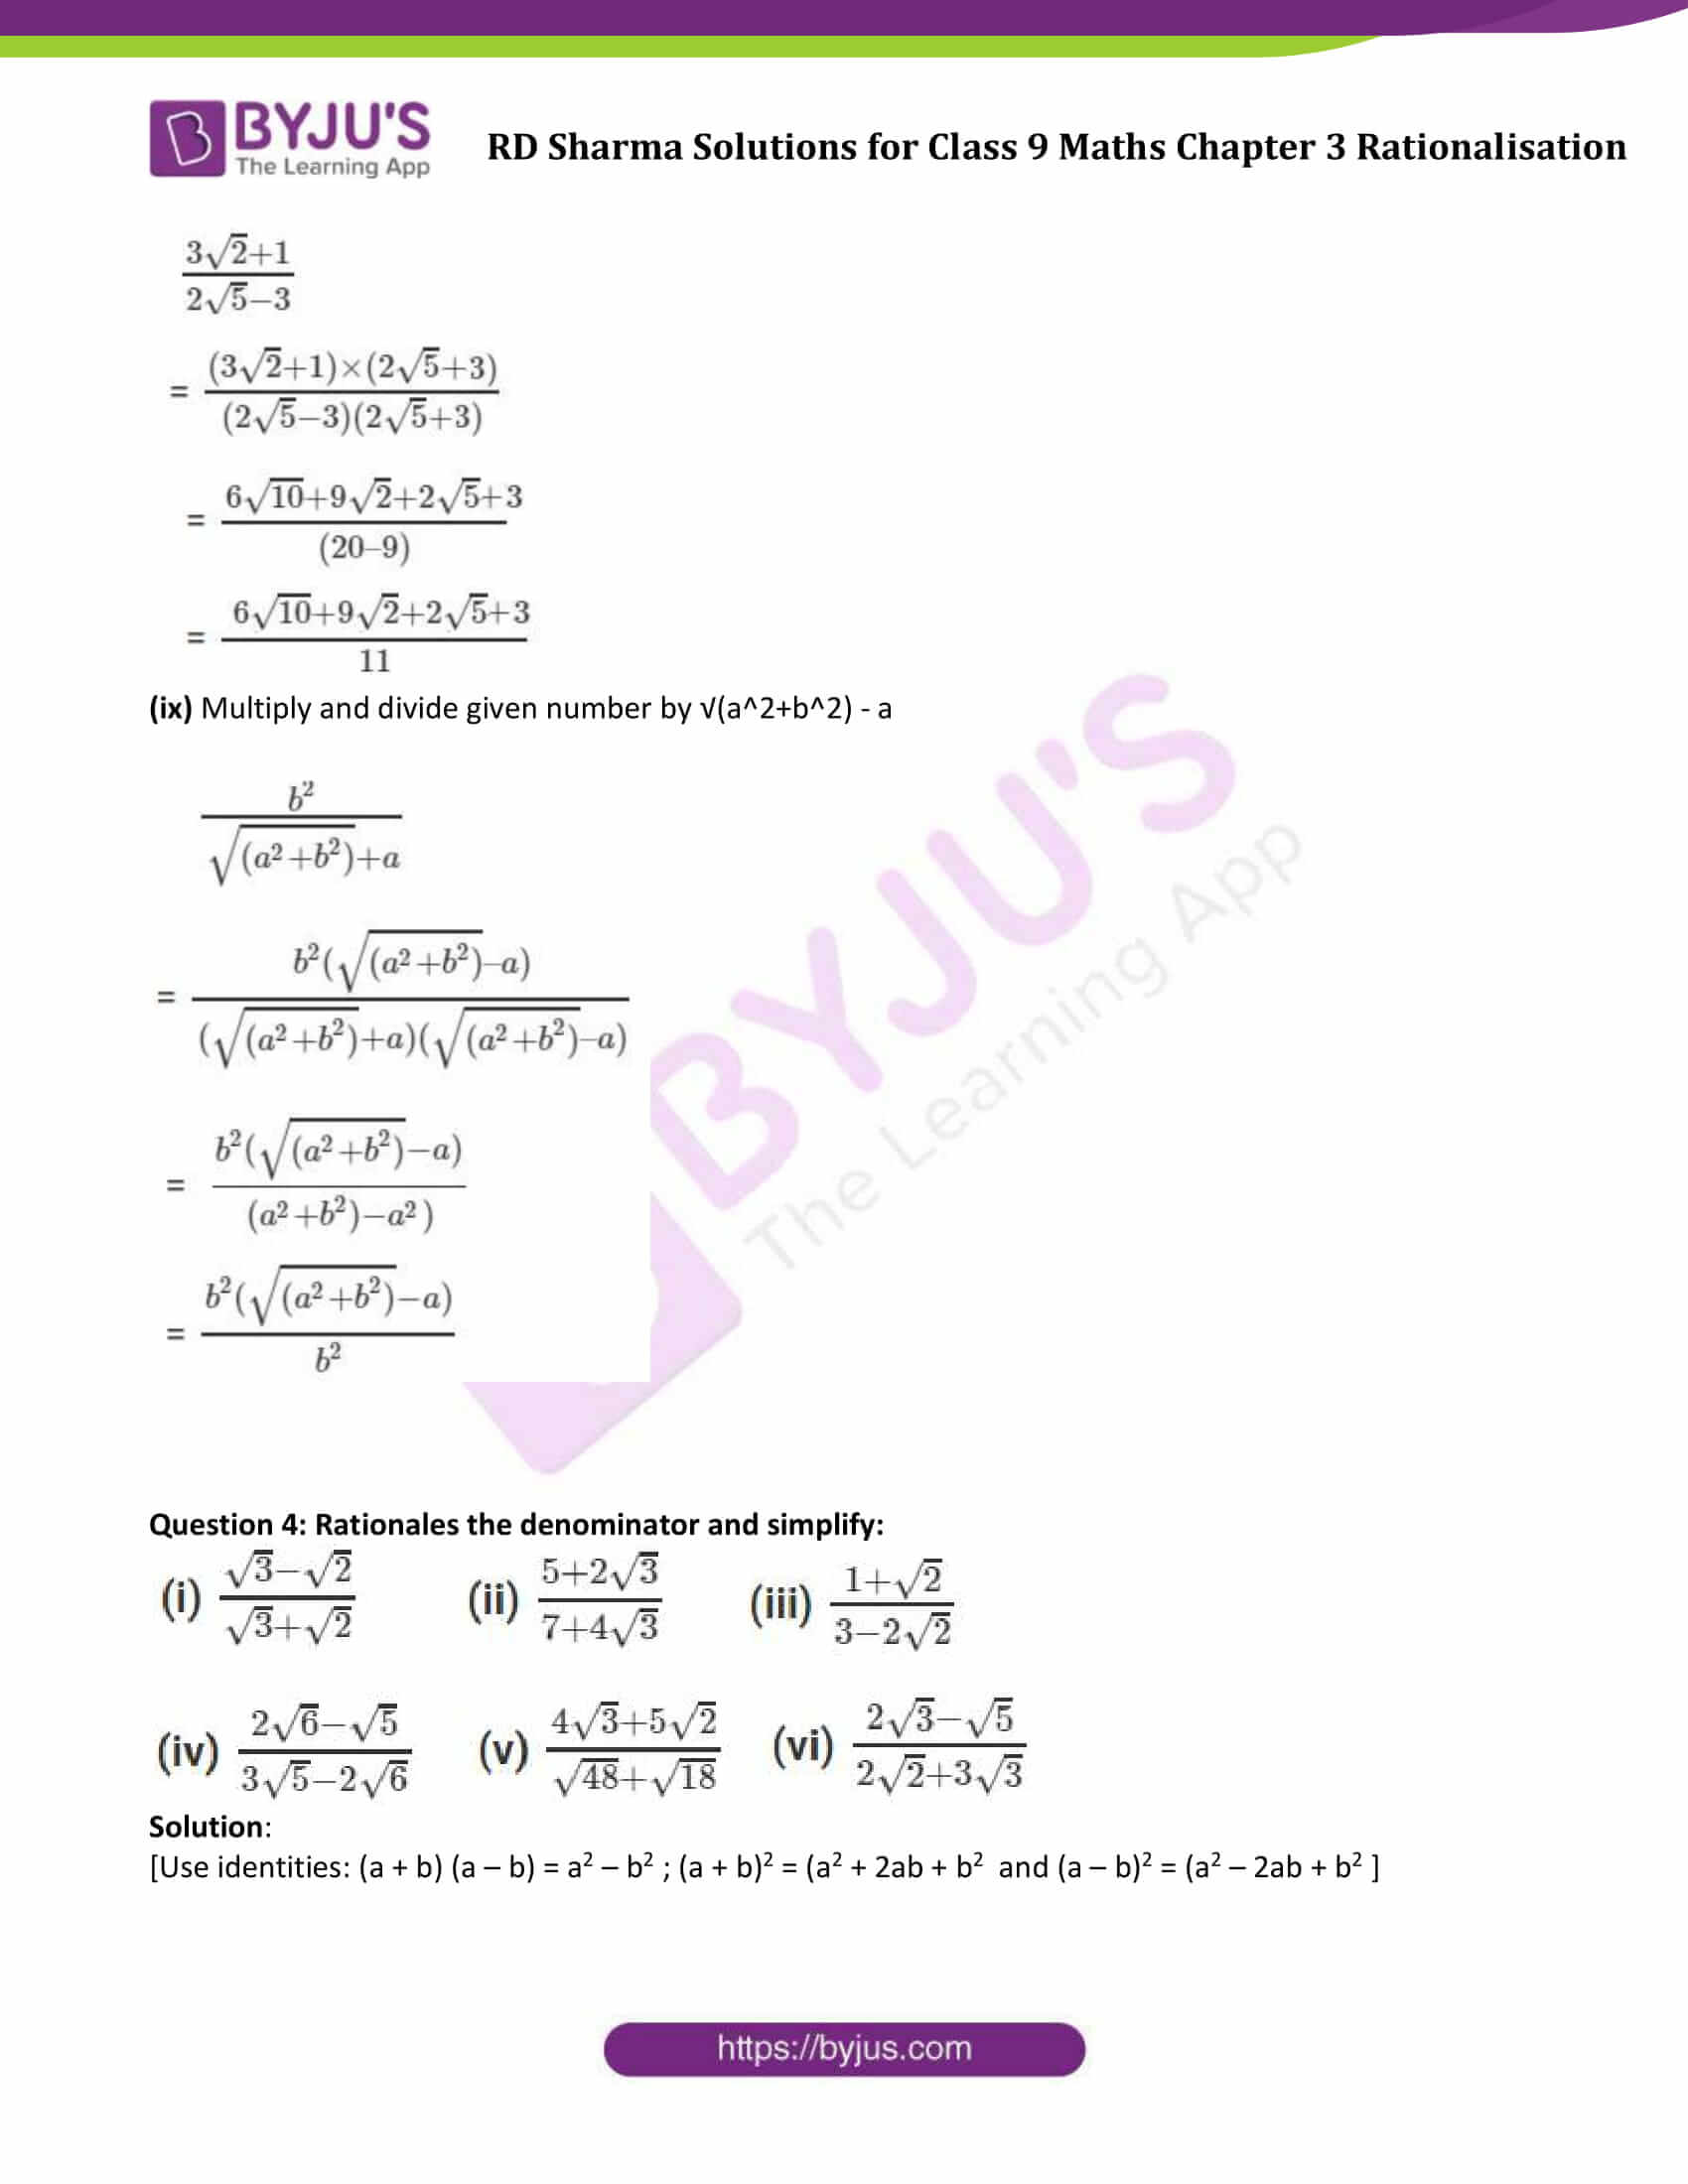 RD Sharma Solution class 9 Maths Chapter 3 Rationalisation 10